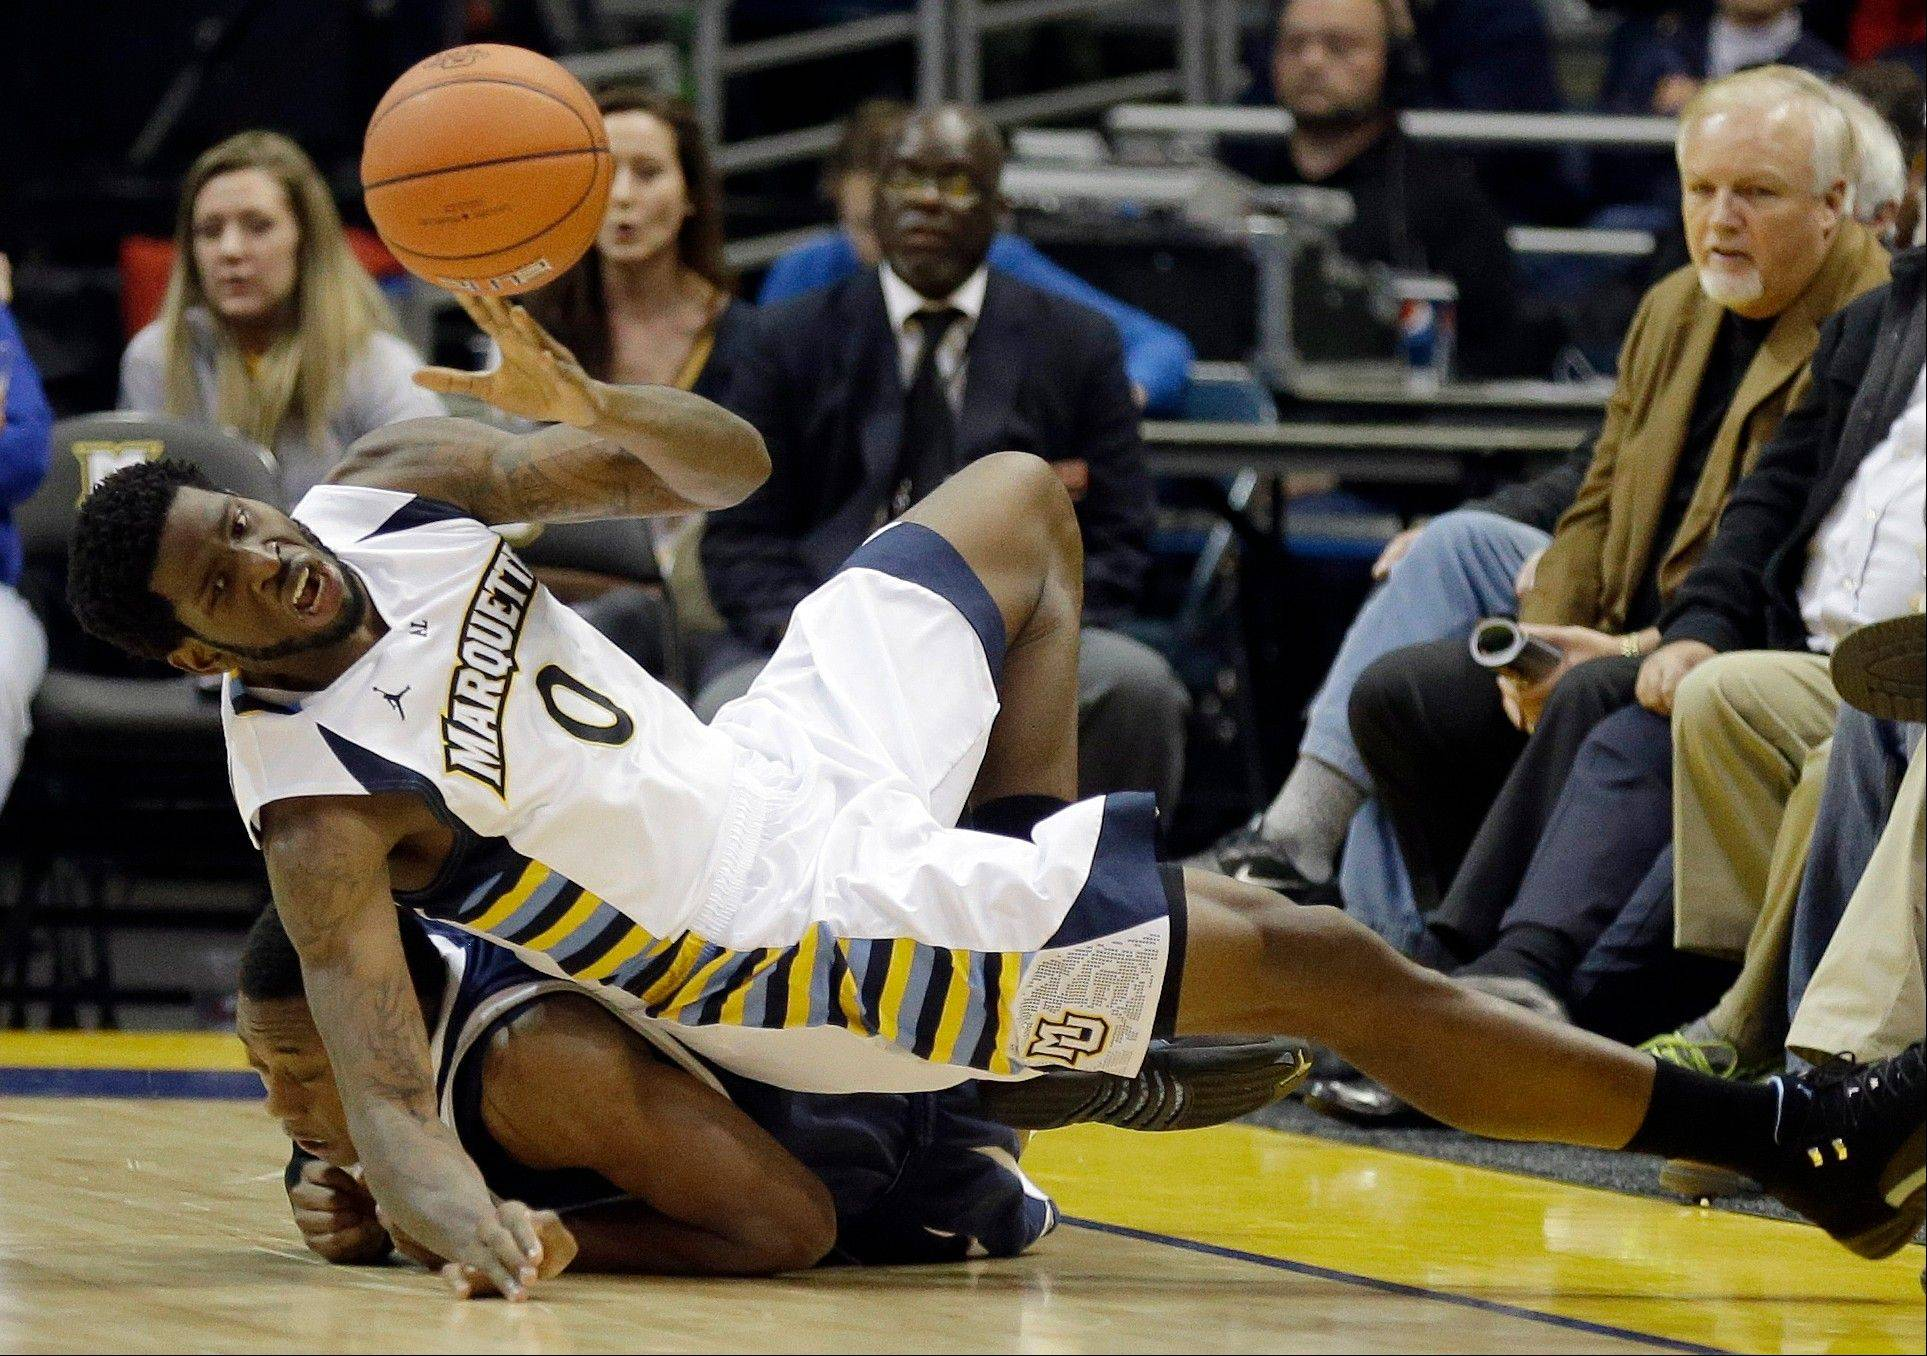 Marquette�s Jamil Wilson dives over New Hampshire�s Jacoby Armstrong for a loose ball during the second half of Thursday�s game in Milwaukee.